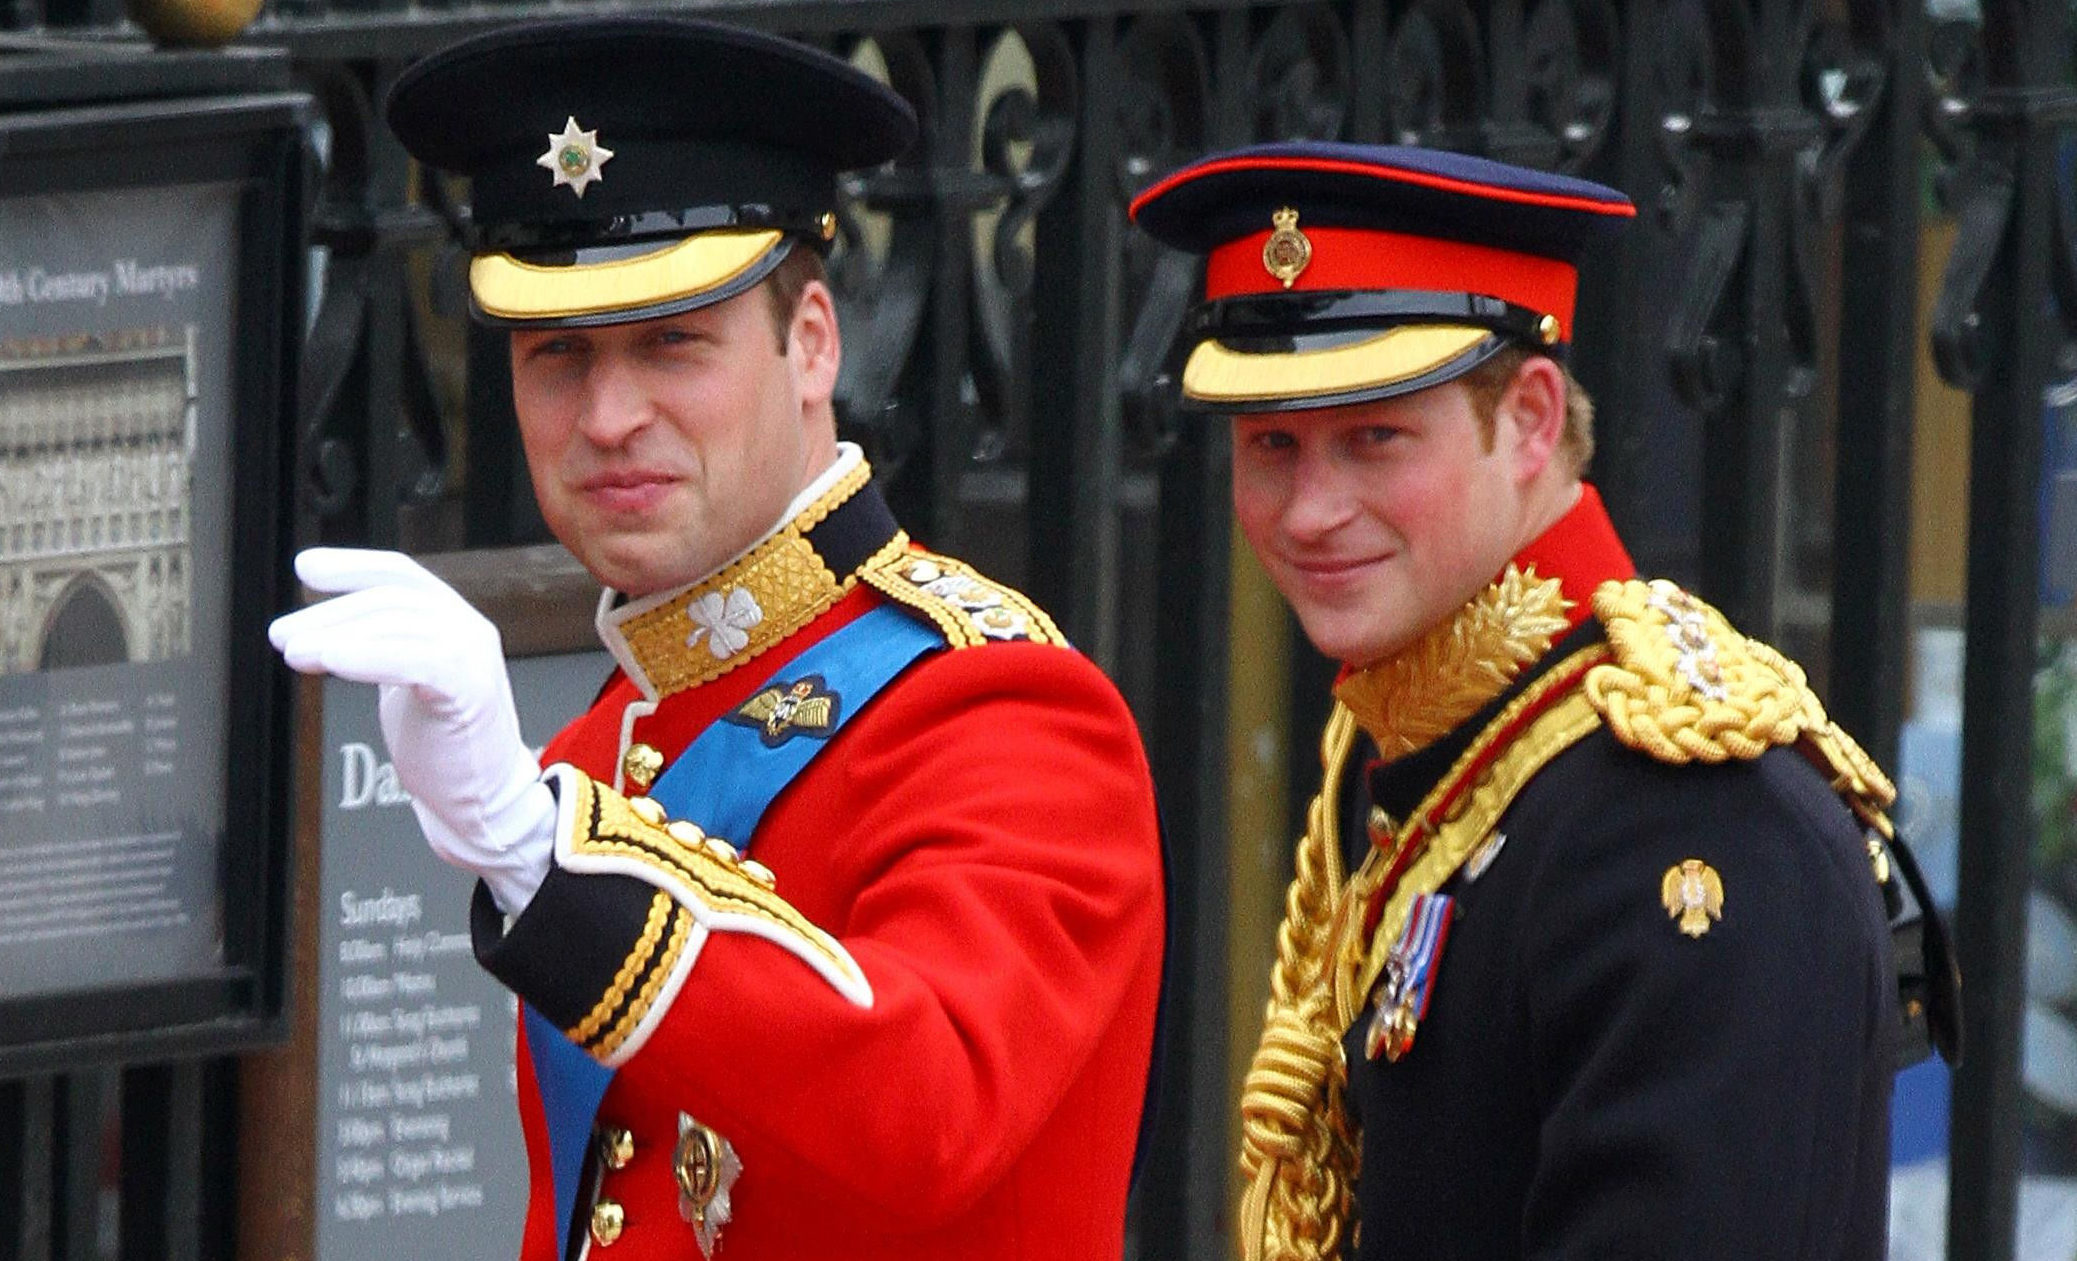 Harry and William at 2011's Royal Wedding (Gareth Fuller/PA Wire)